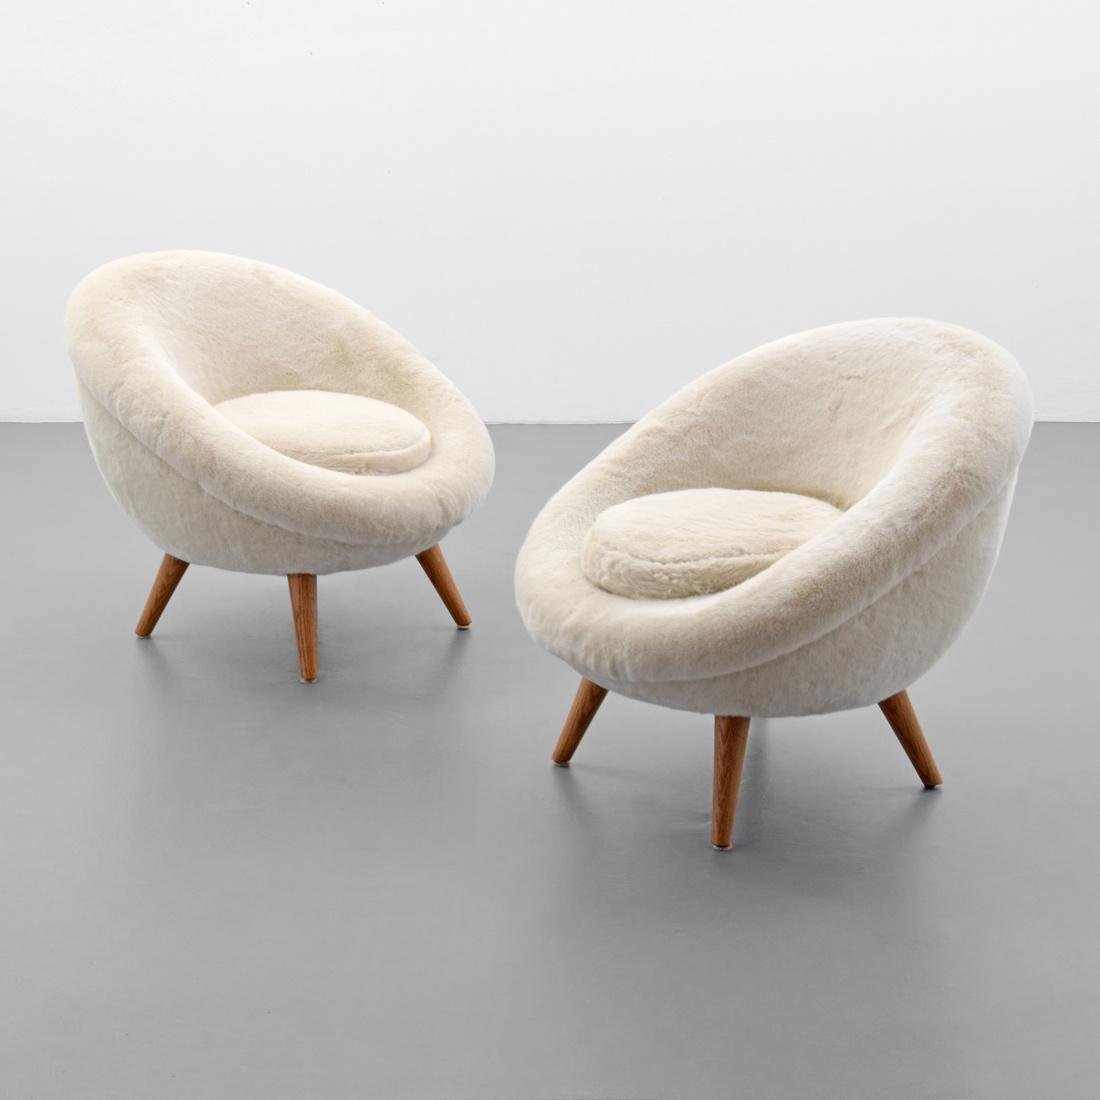 Pair of Jean Royere GRAND OEUF (EGG) Lounge Chairs